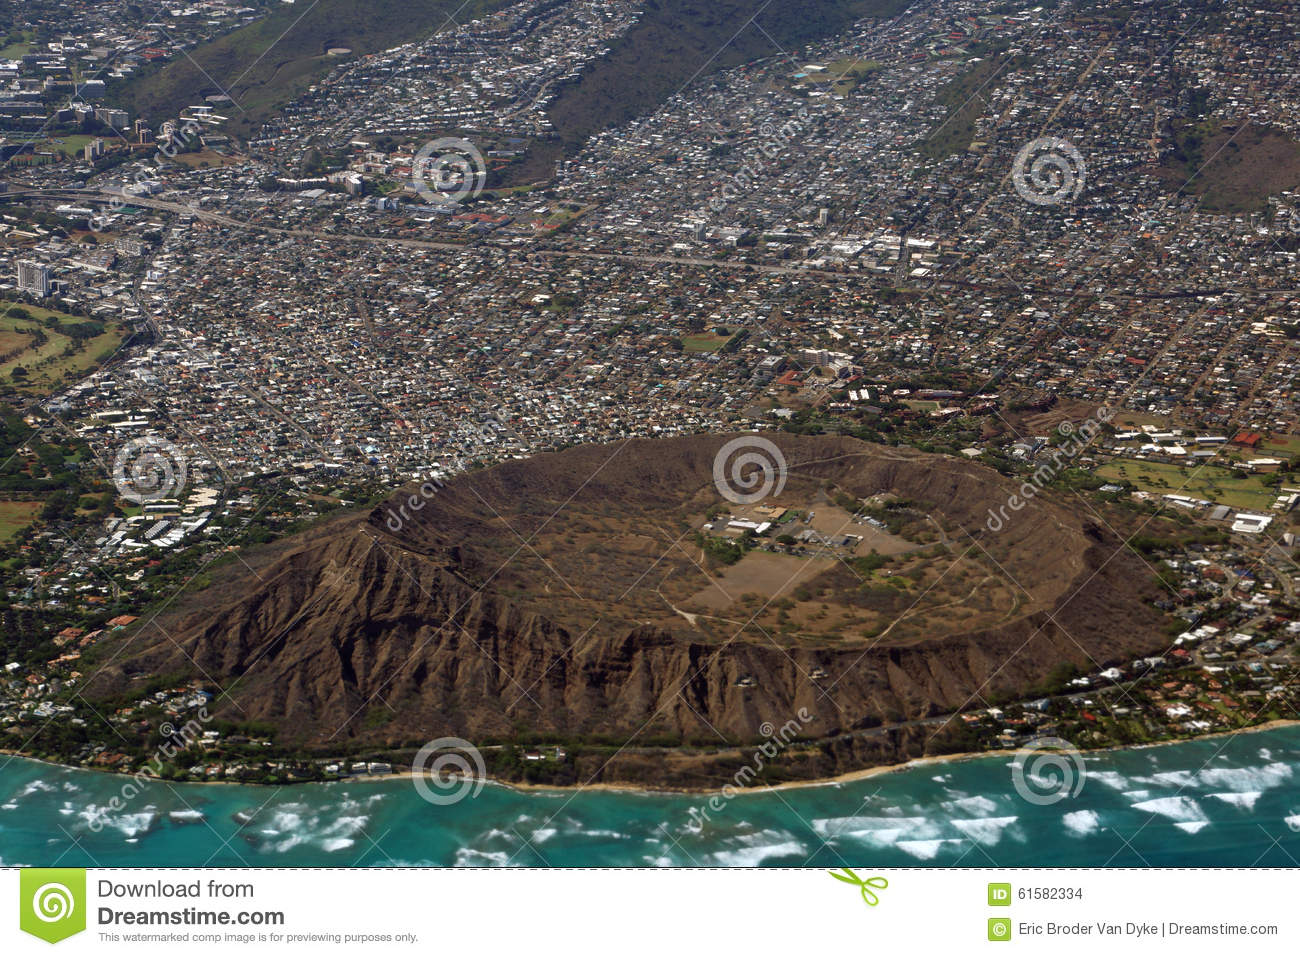 Diamondhead (MS) United States  City pictures : Luchtmening Van Diamondhead, Kapahulu, Kahala, Vreedzame Oceaan Stock ...